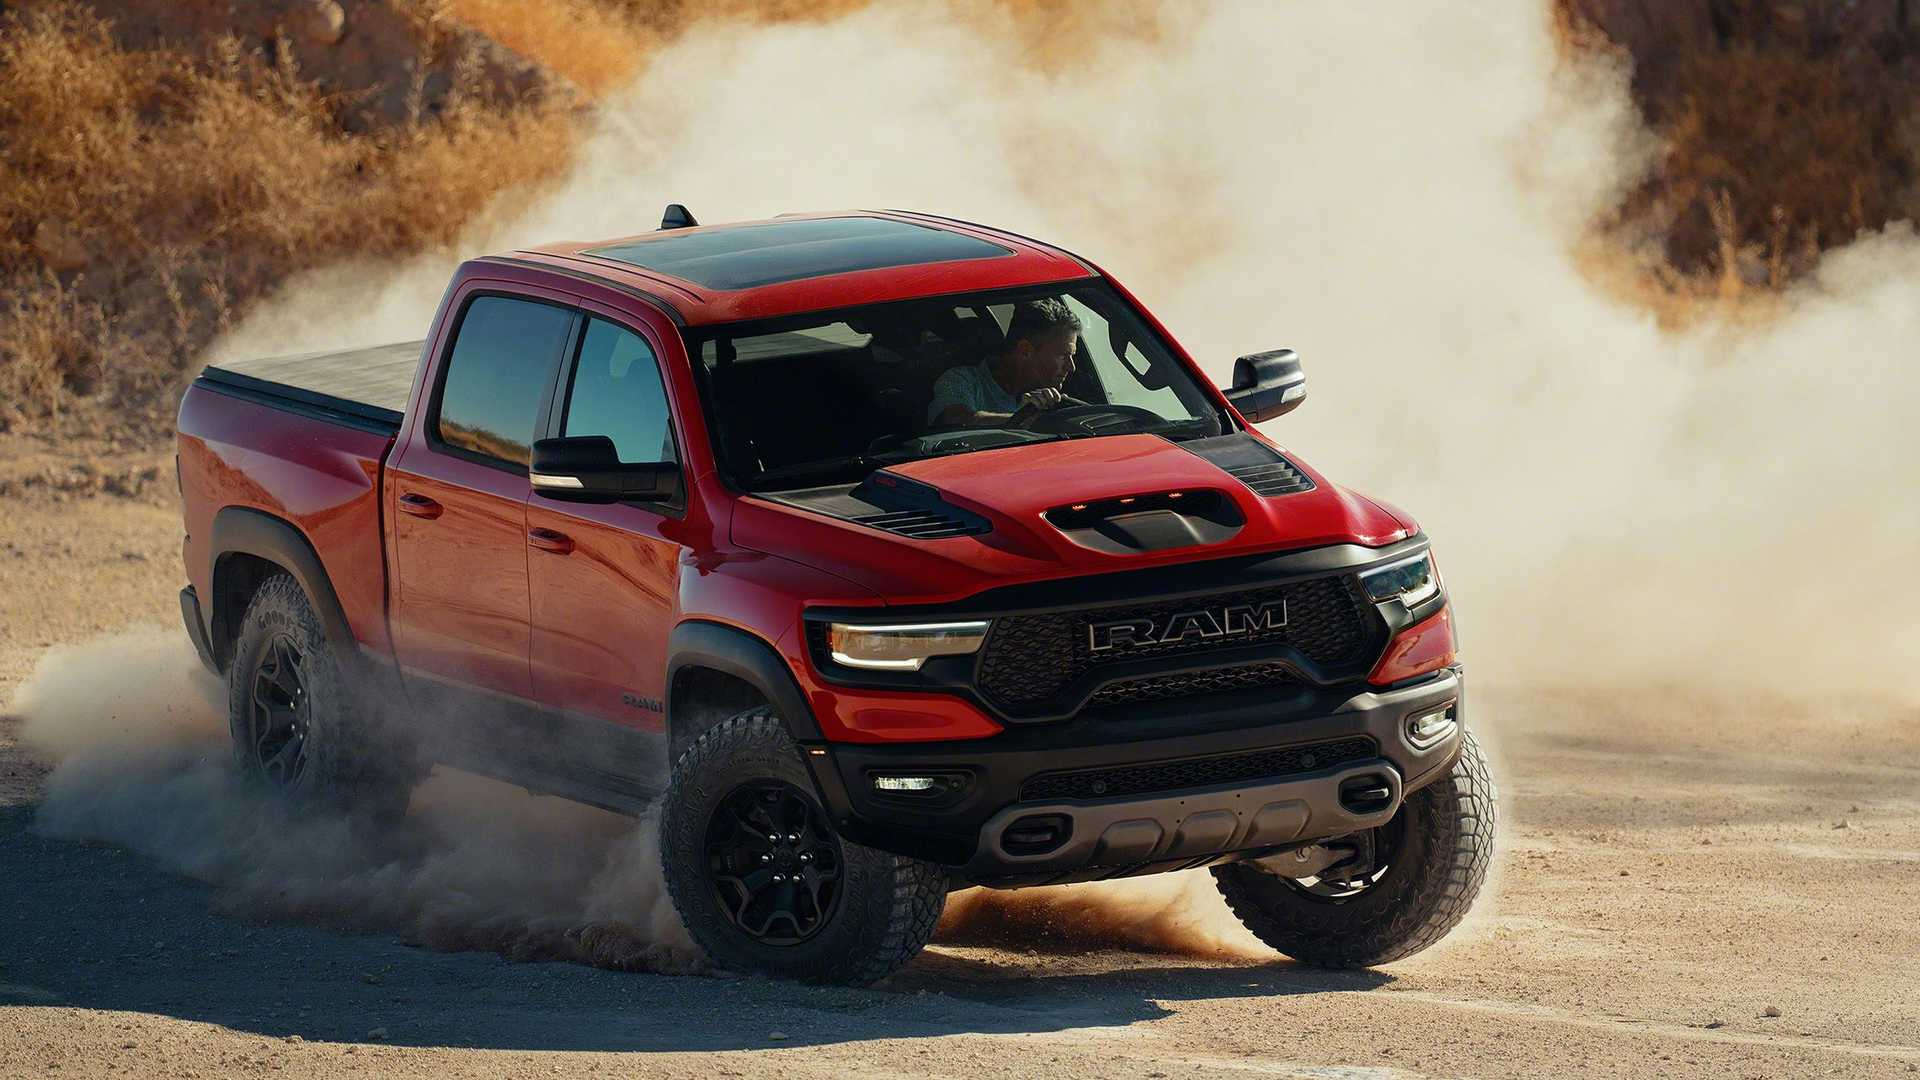 Fiat Chrysler Automobiles CEO Michael Manley let it slip during a talk with investors that an all-electric pickup truck was in development under the Ram brand. He refused to provide any release estimates.